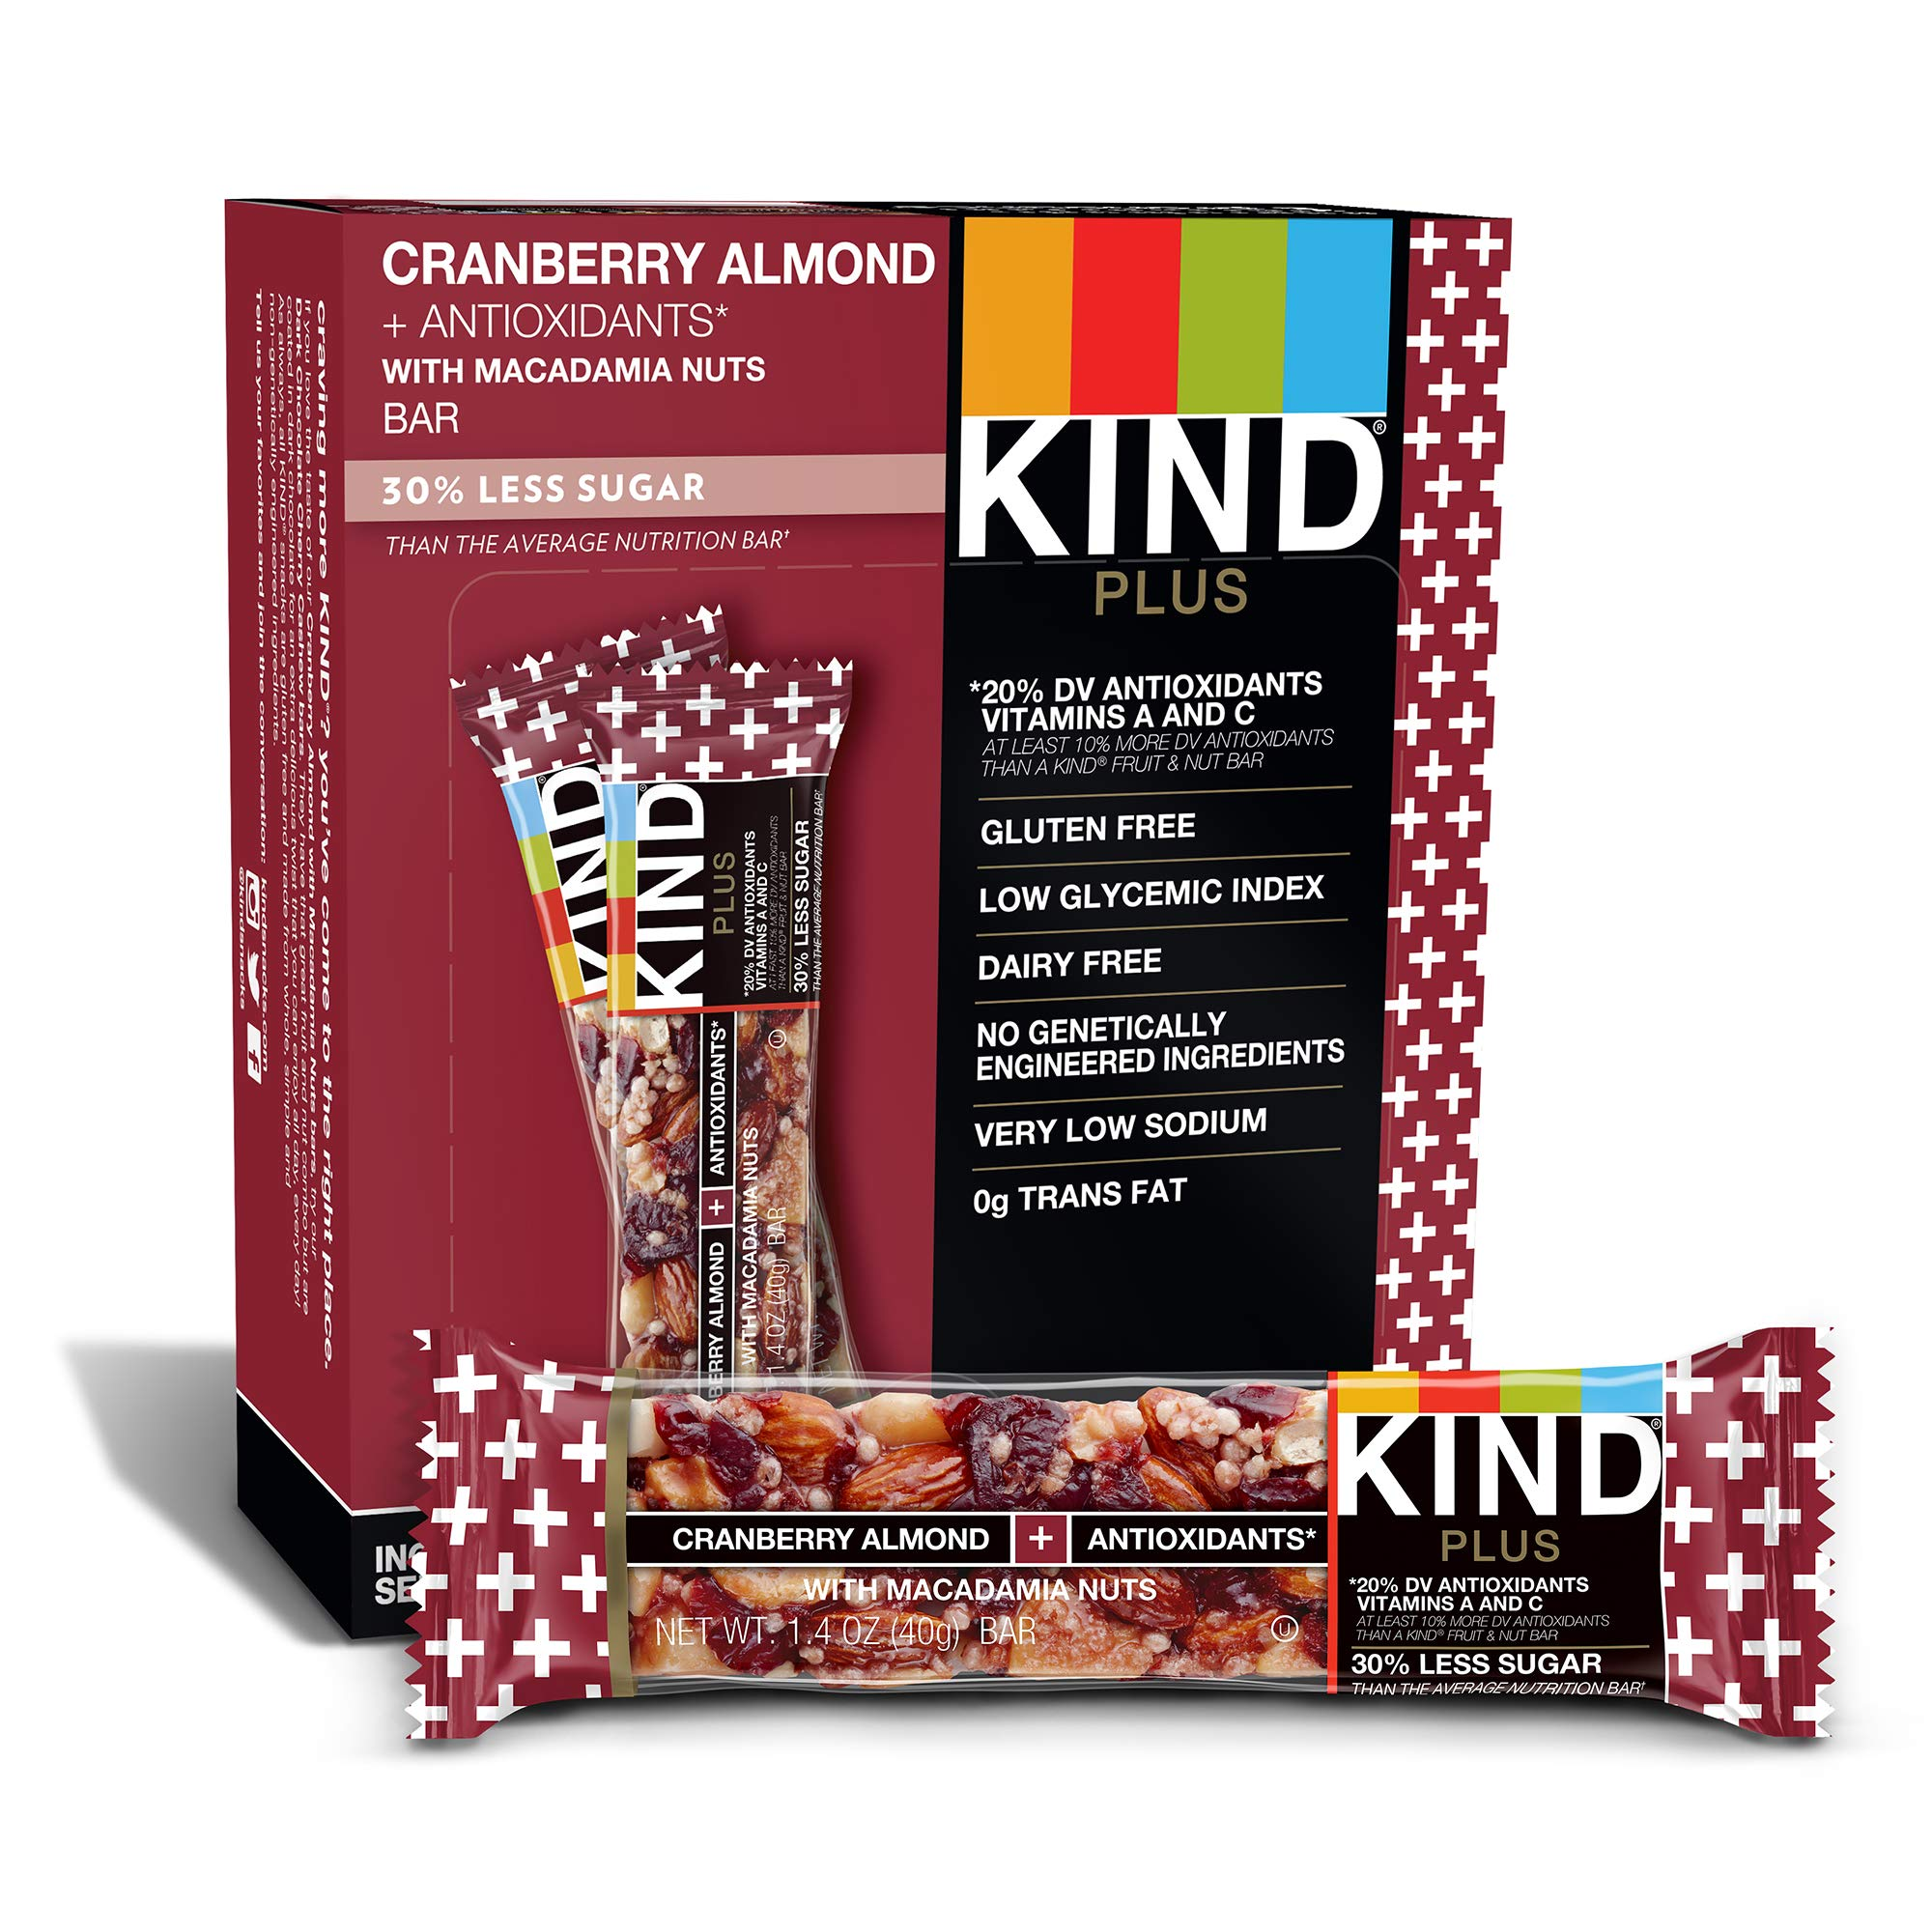 Kind Bars, Cranberry Almond Plus Antioxidants with Macadamia Nuts, Gluten Free, Low Sugar